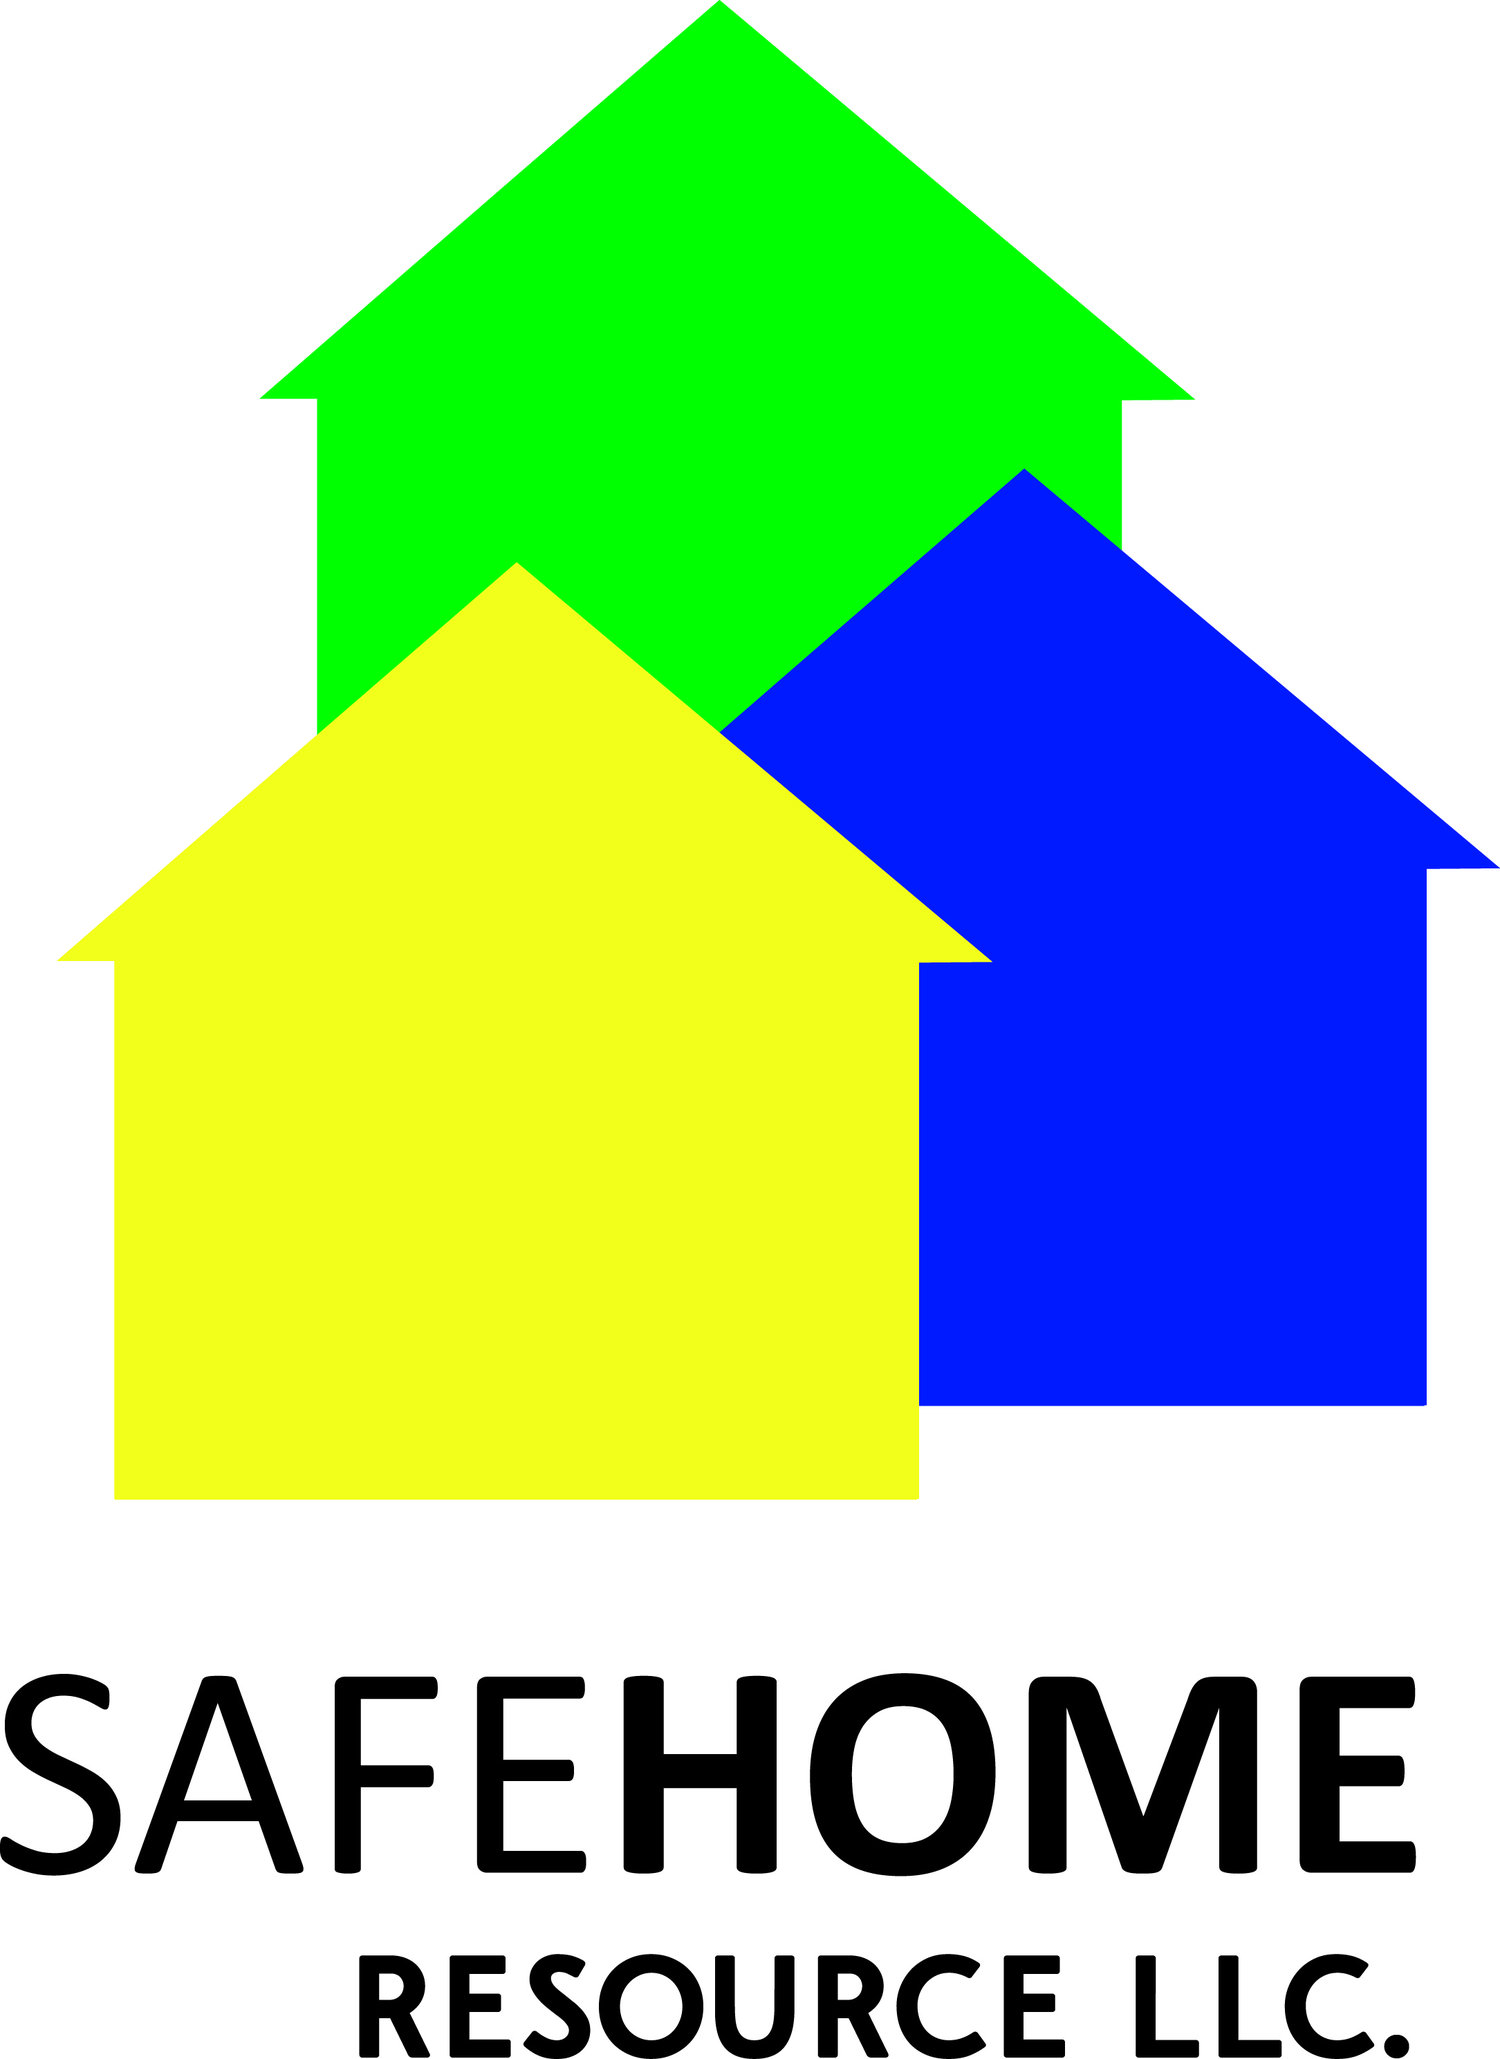 SAFE HOME RESOURCE LLC